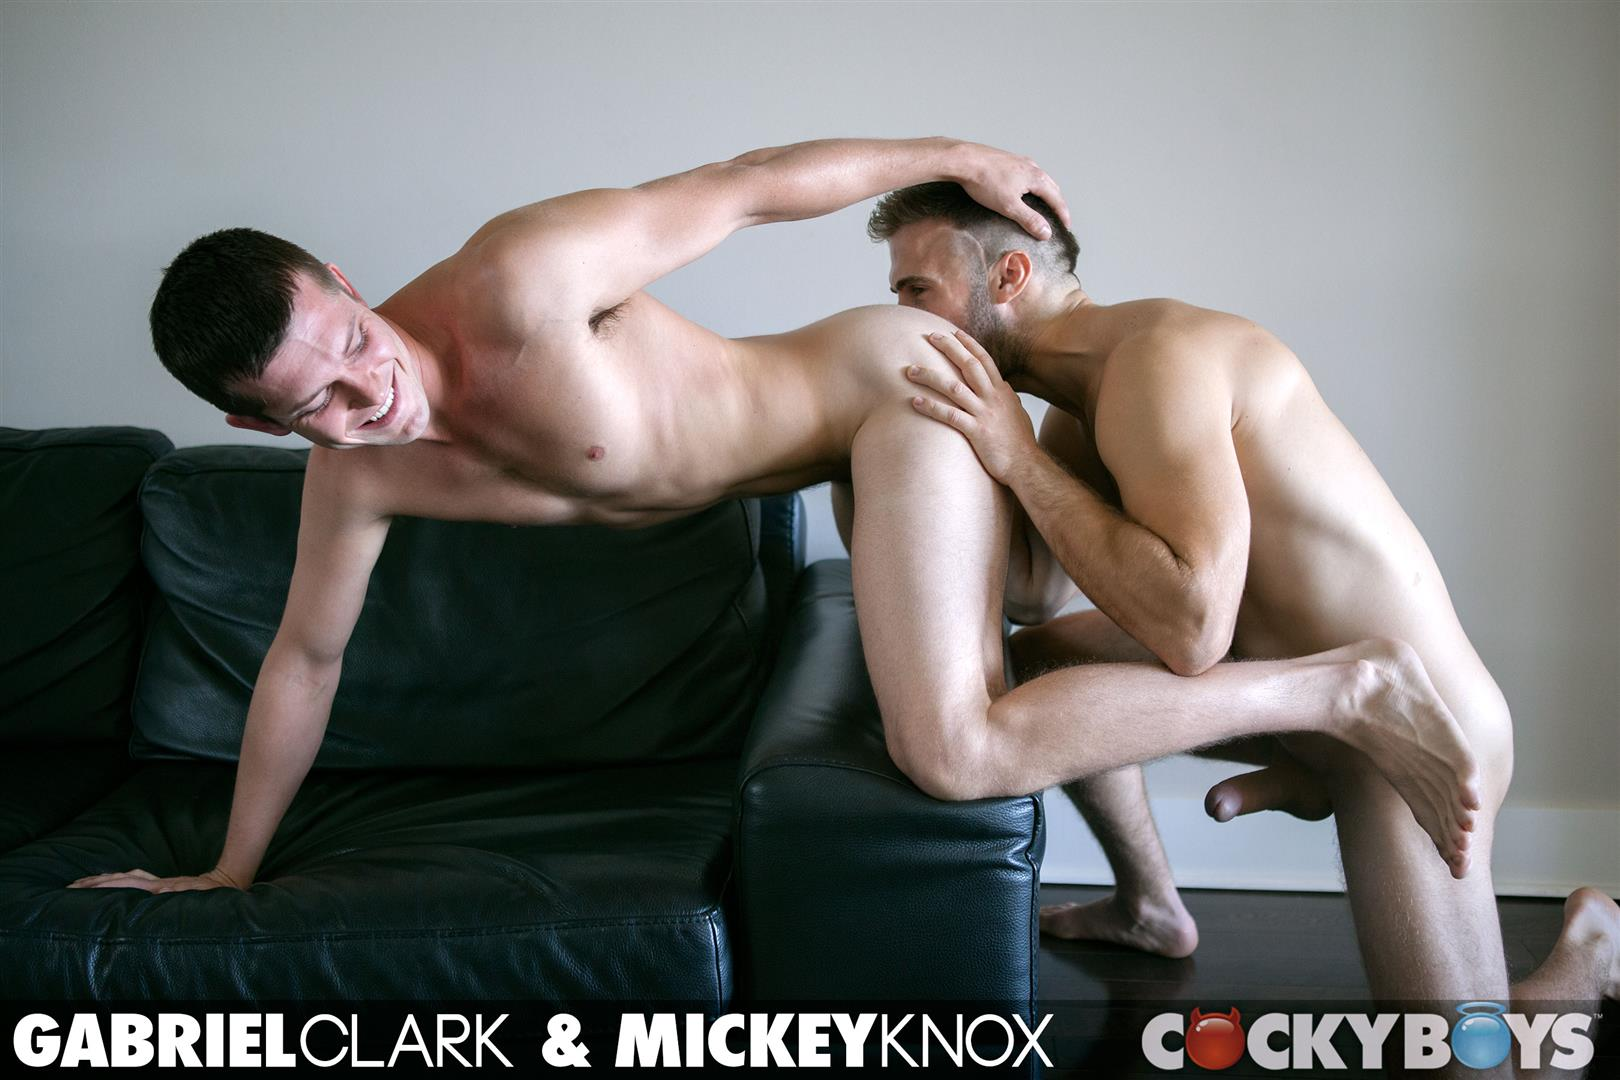 Cockyboys-Mickey-Knox-and-Gabriel-Clark-American-Boys-Thick-Cocks-Fucking-Amateur-Gay-Porn-14 All American Boys Mickey Knox and Gabriel Clark Share A Fuck